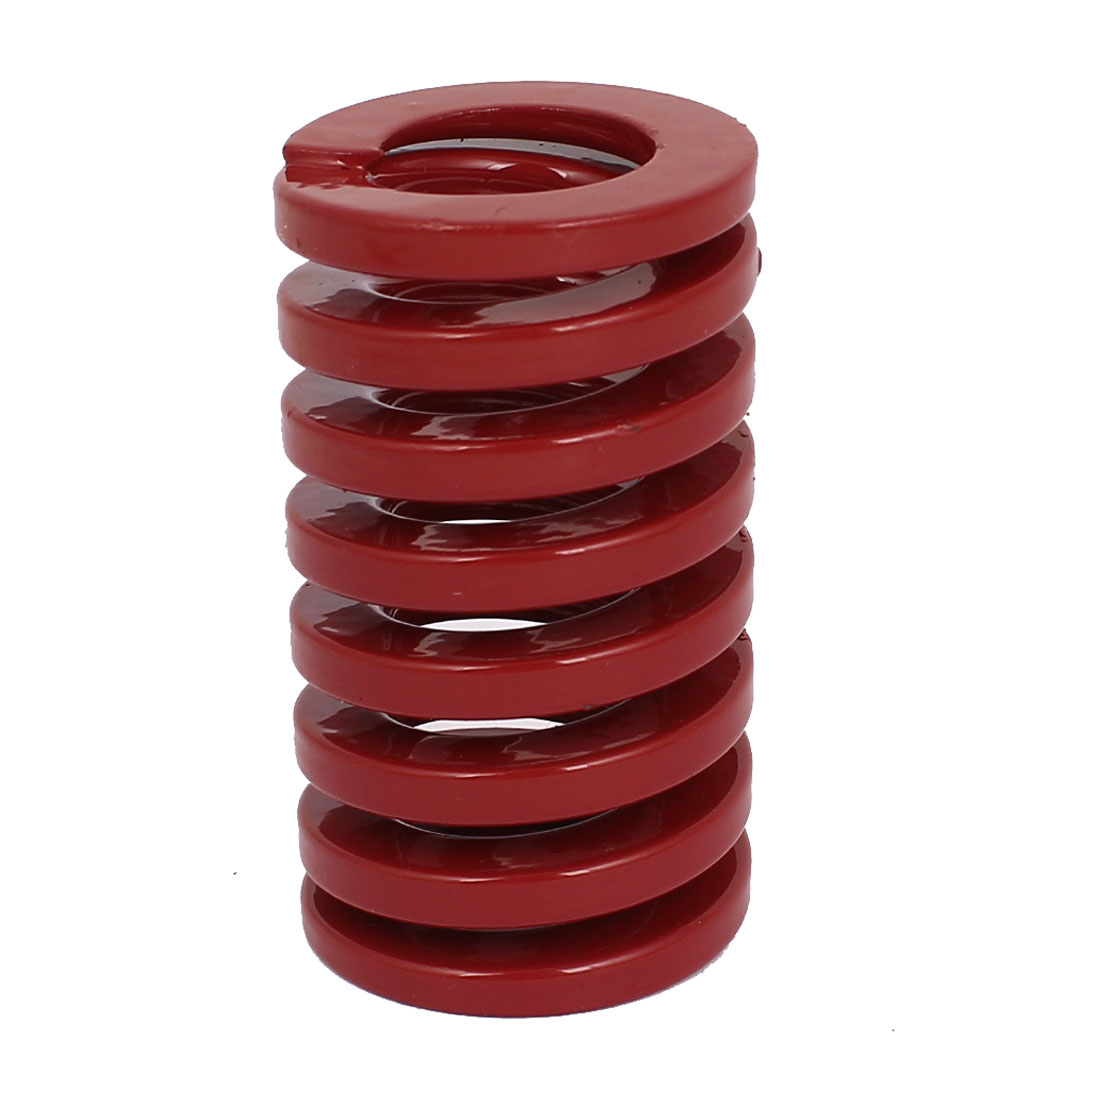 40mm OD 70mm Long Coil Medium Load Stamping Compression Mold Die Spring Red